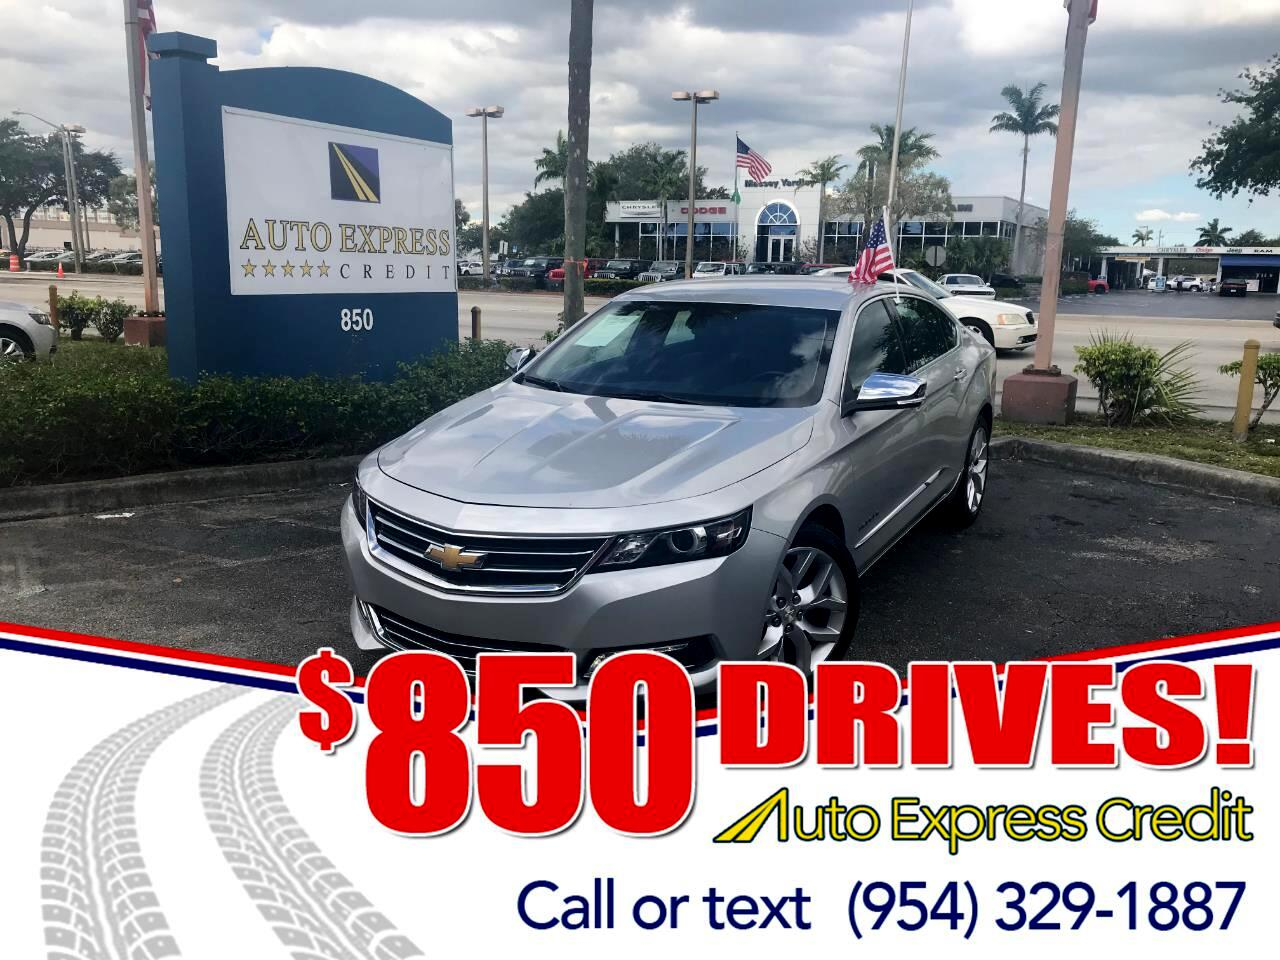 Used 2018 Chevrolet Impala For Sale In Plantation FL 33317 Auto